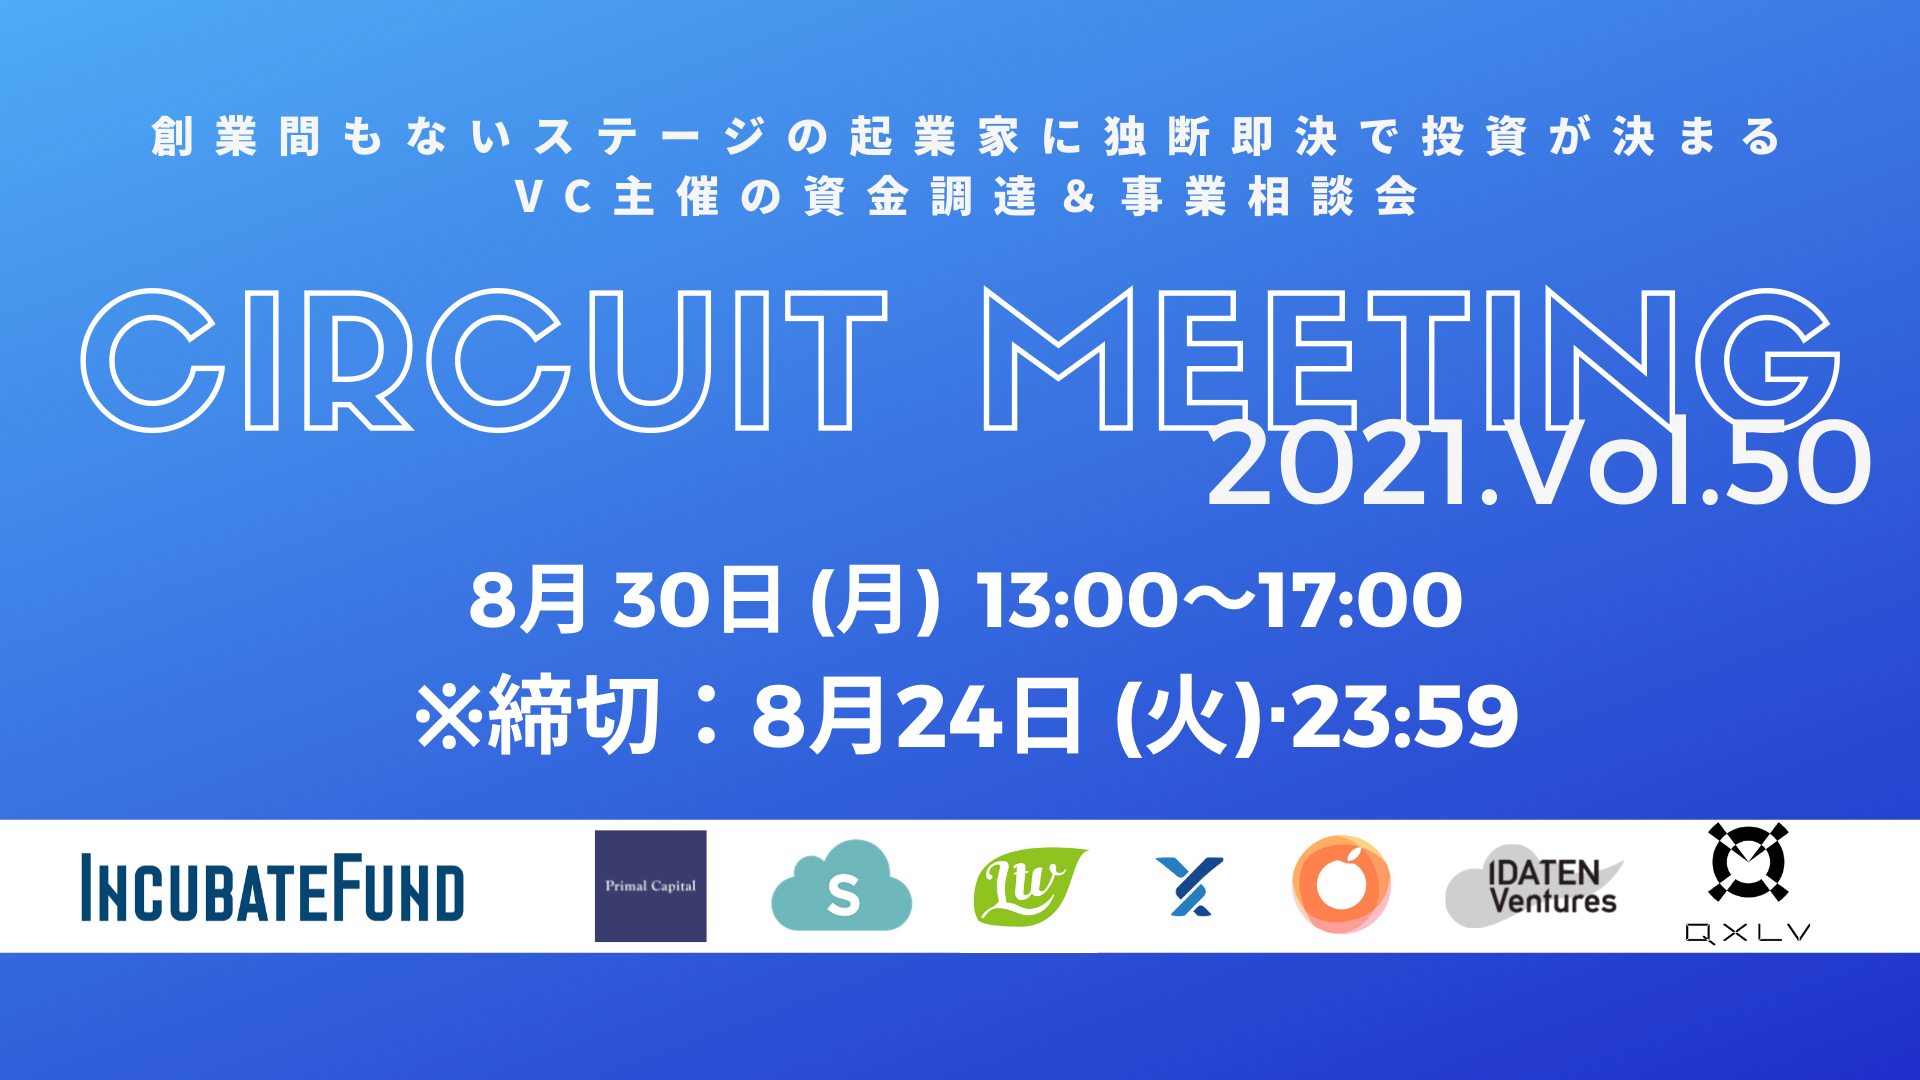 【8/24締切】Circuit Meeting Vol.50